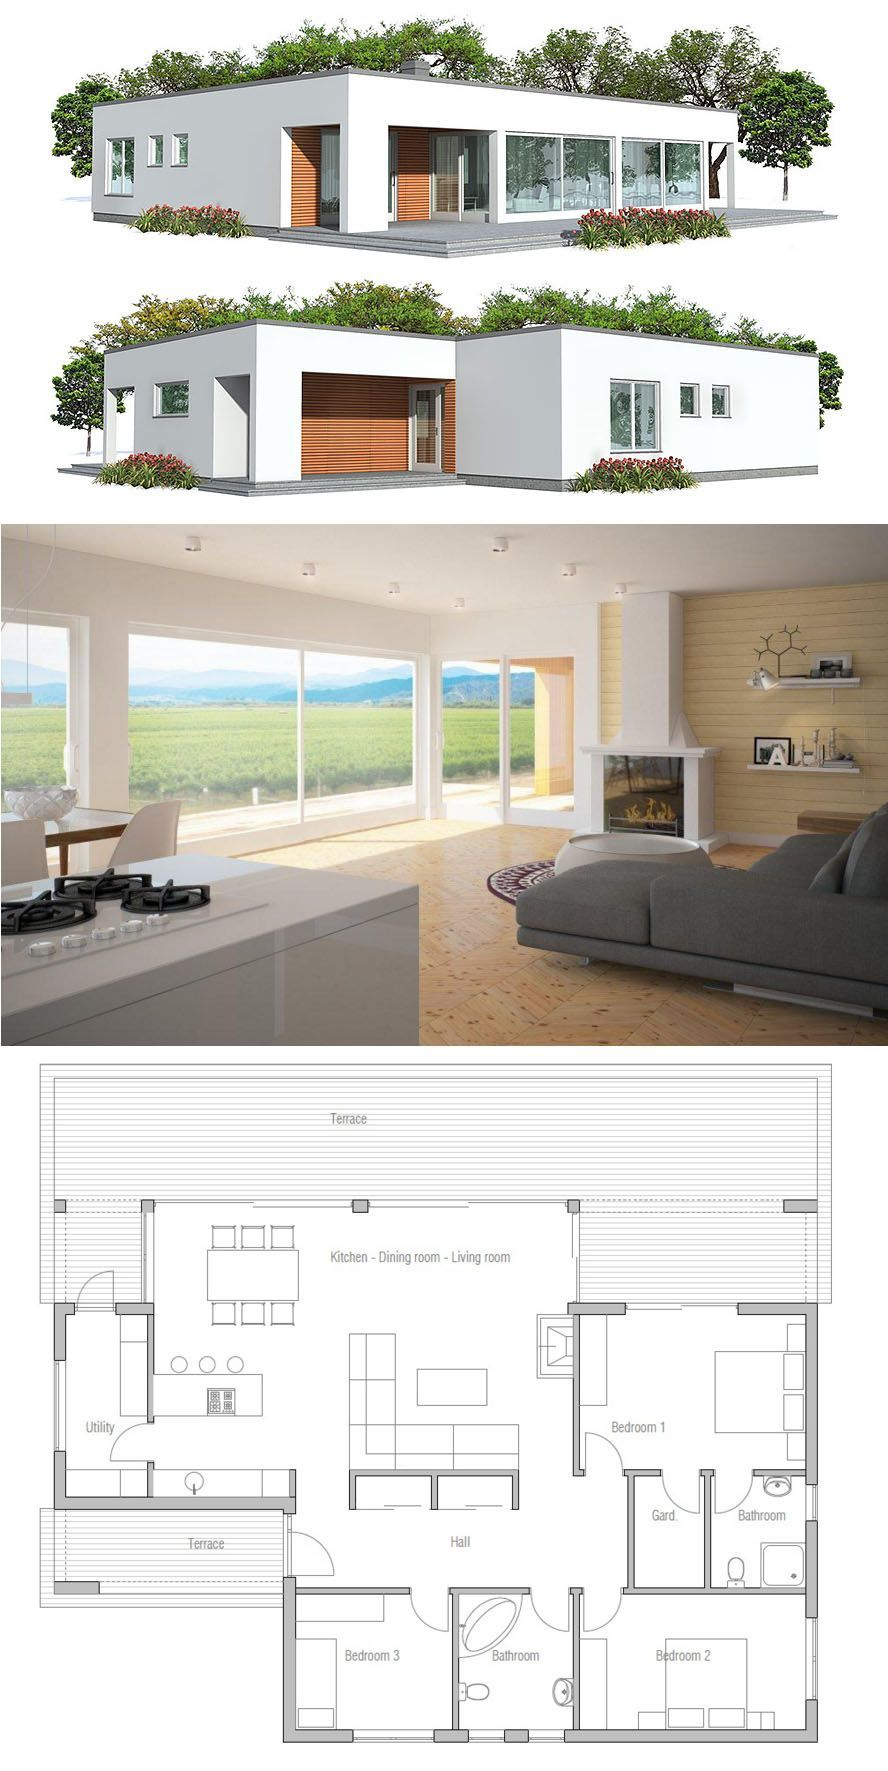 Wondrous Diy Ideas Minimalist Home Studio Interiors Minimalist Living Room Apartment Inspiration Minim Contemporary House Plans Modern House Plans House Plans